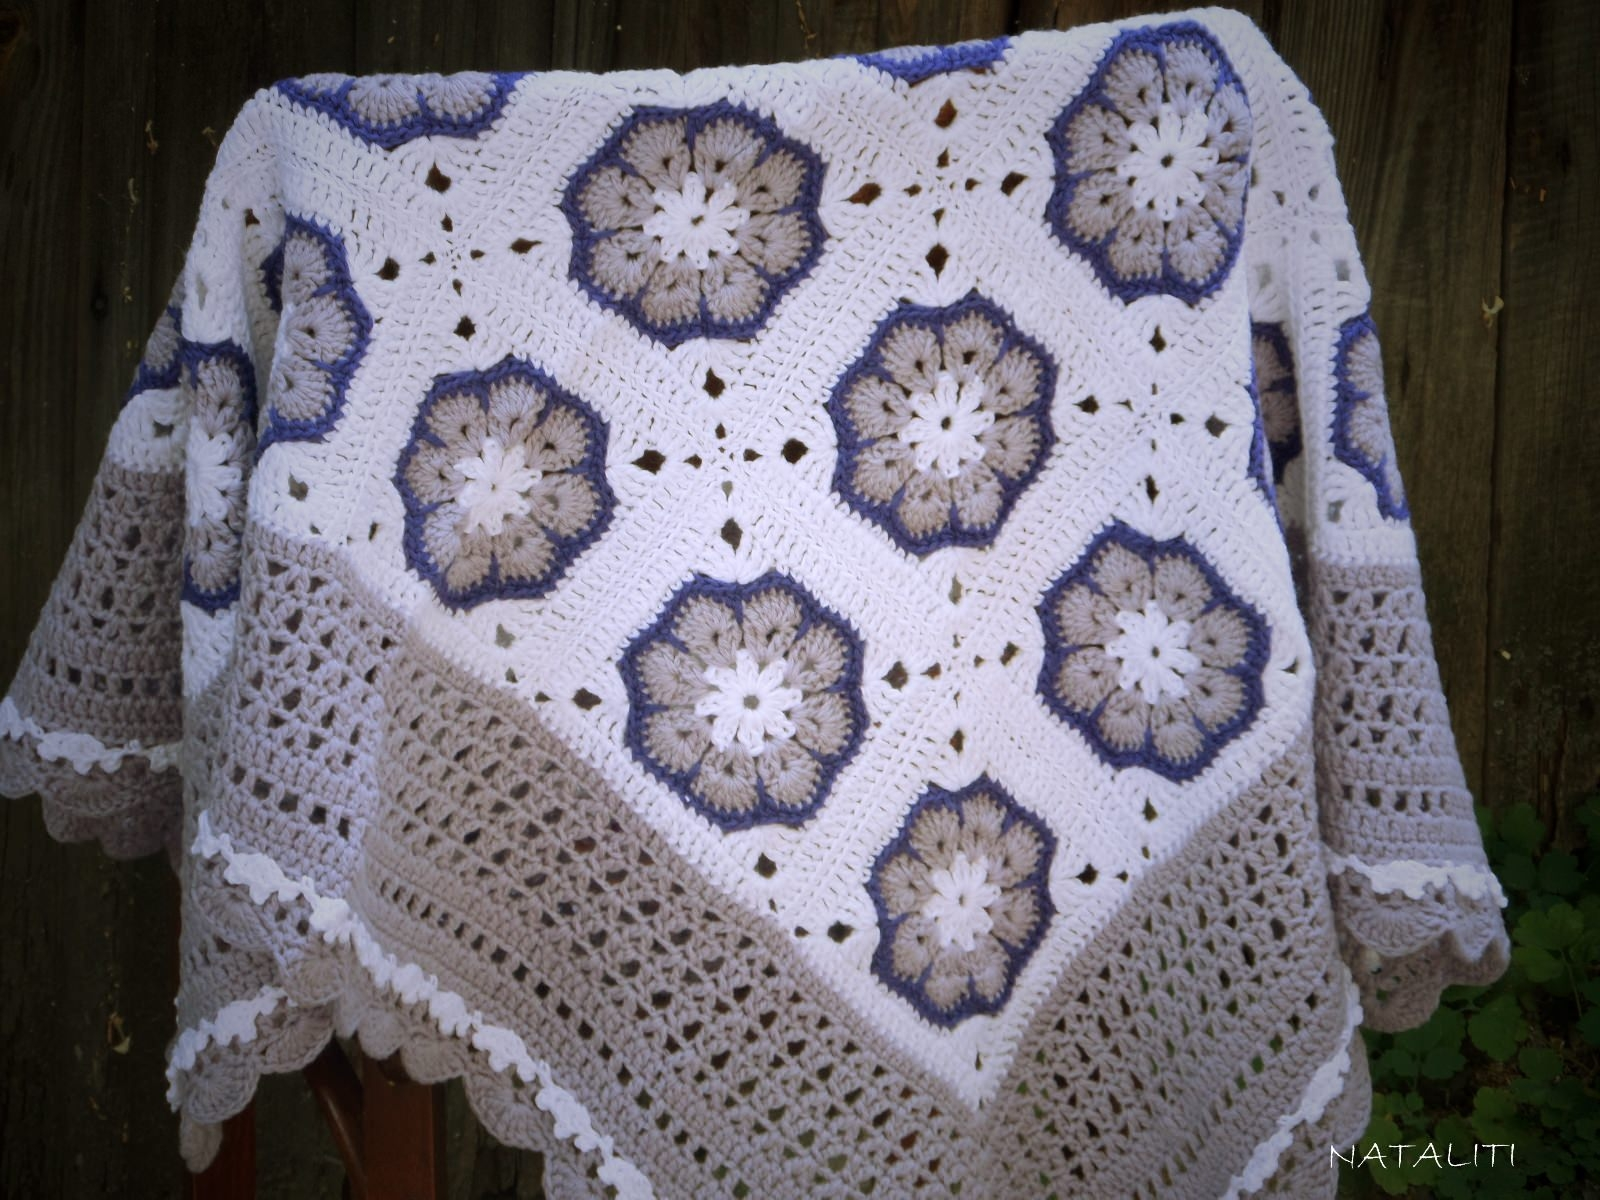 Knitted baby blanket Lavender-white - 703